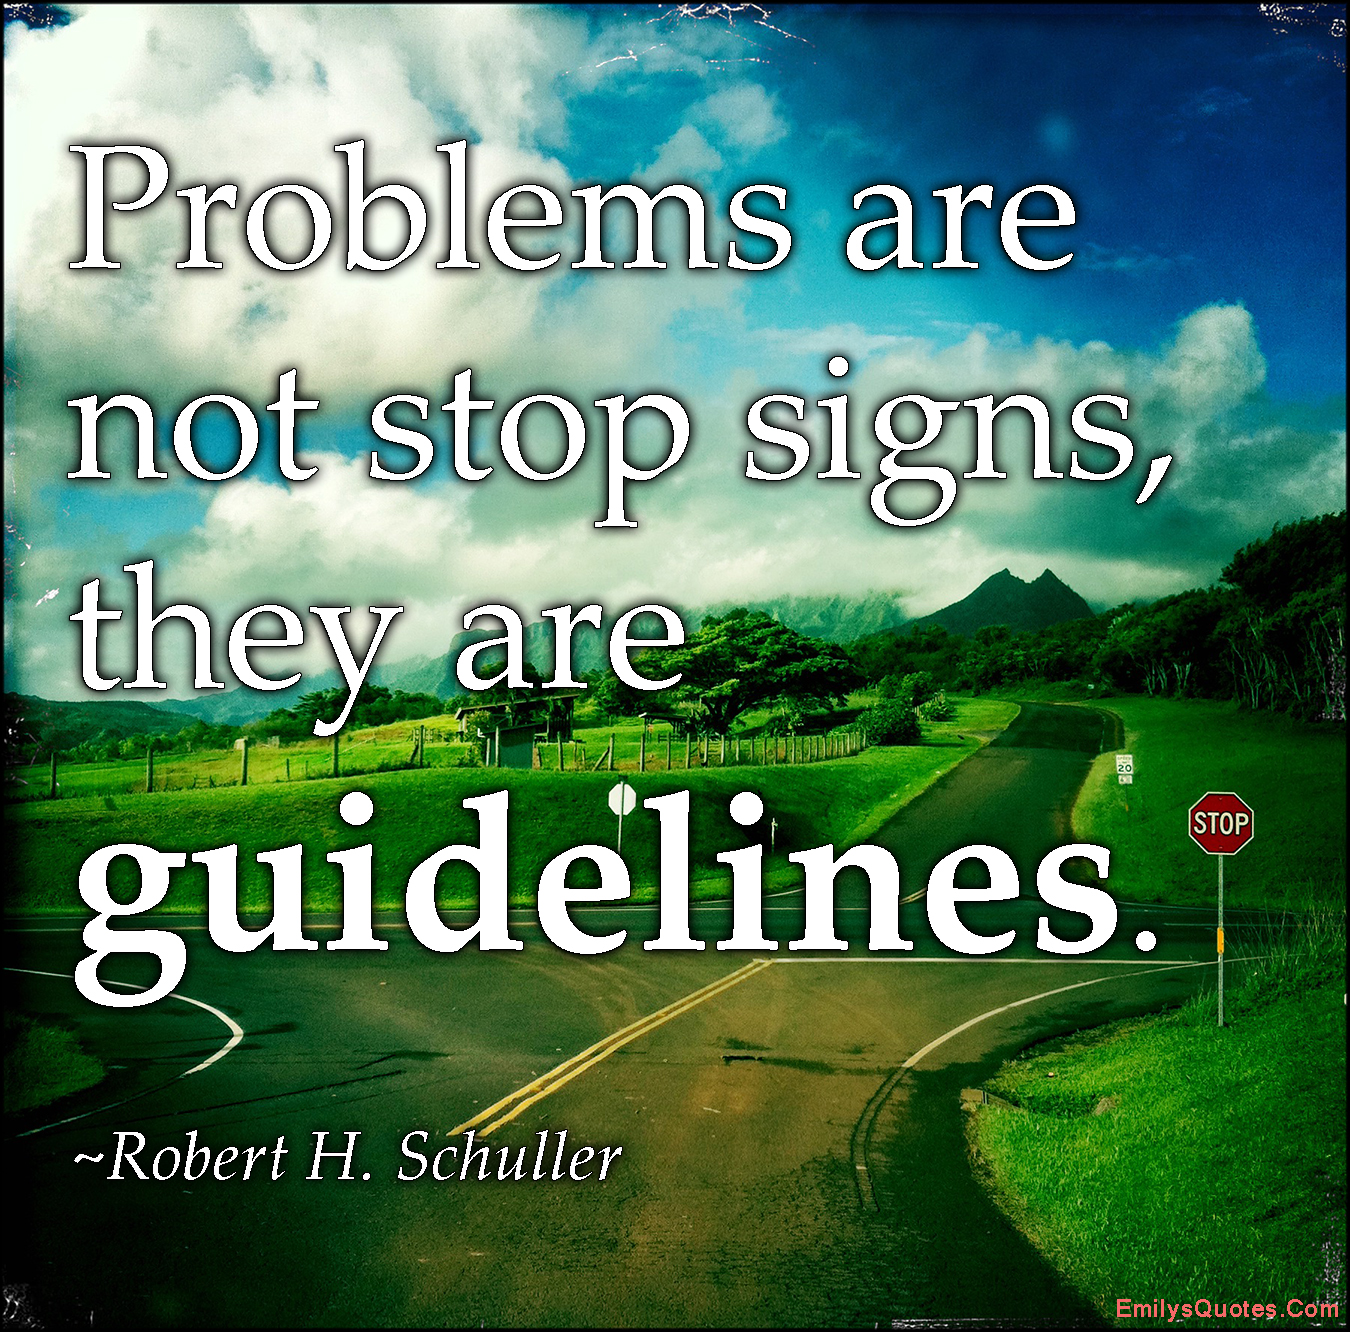 EmilysQuotes.Com - amazing, great, inspirational, motivational, encouraging, attitude, Robert H. Schuller